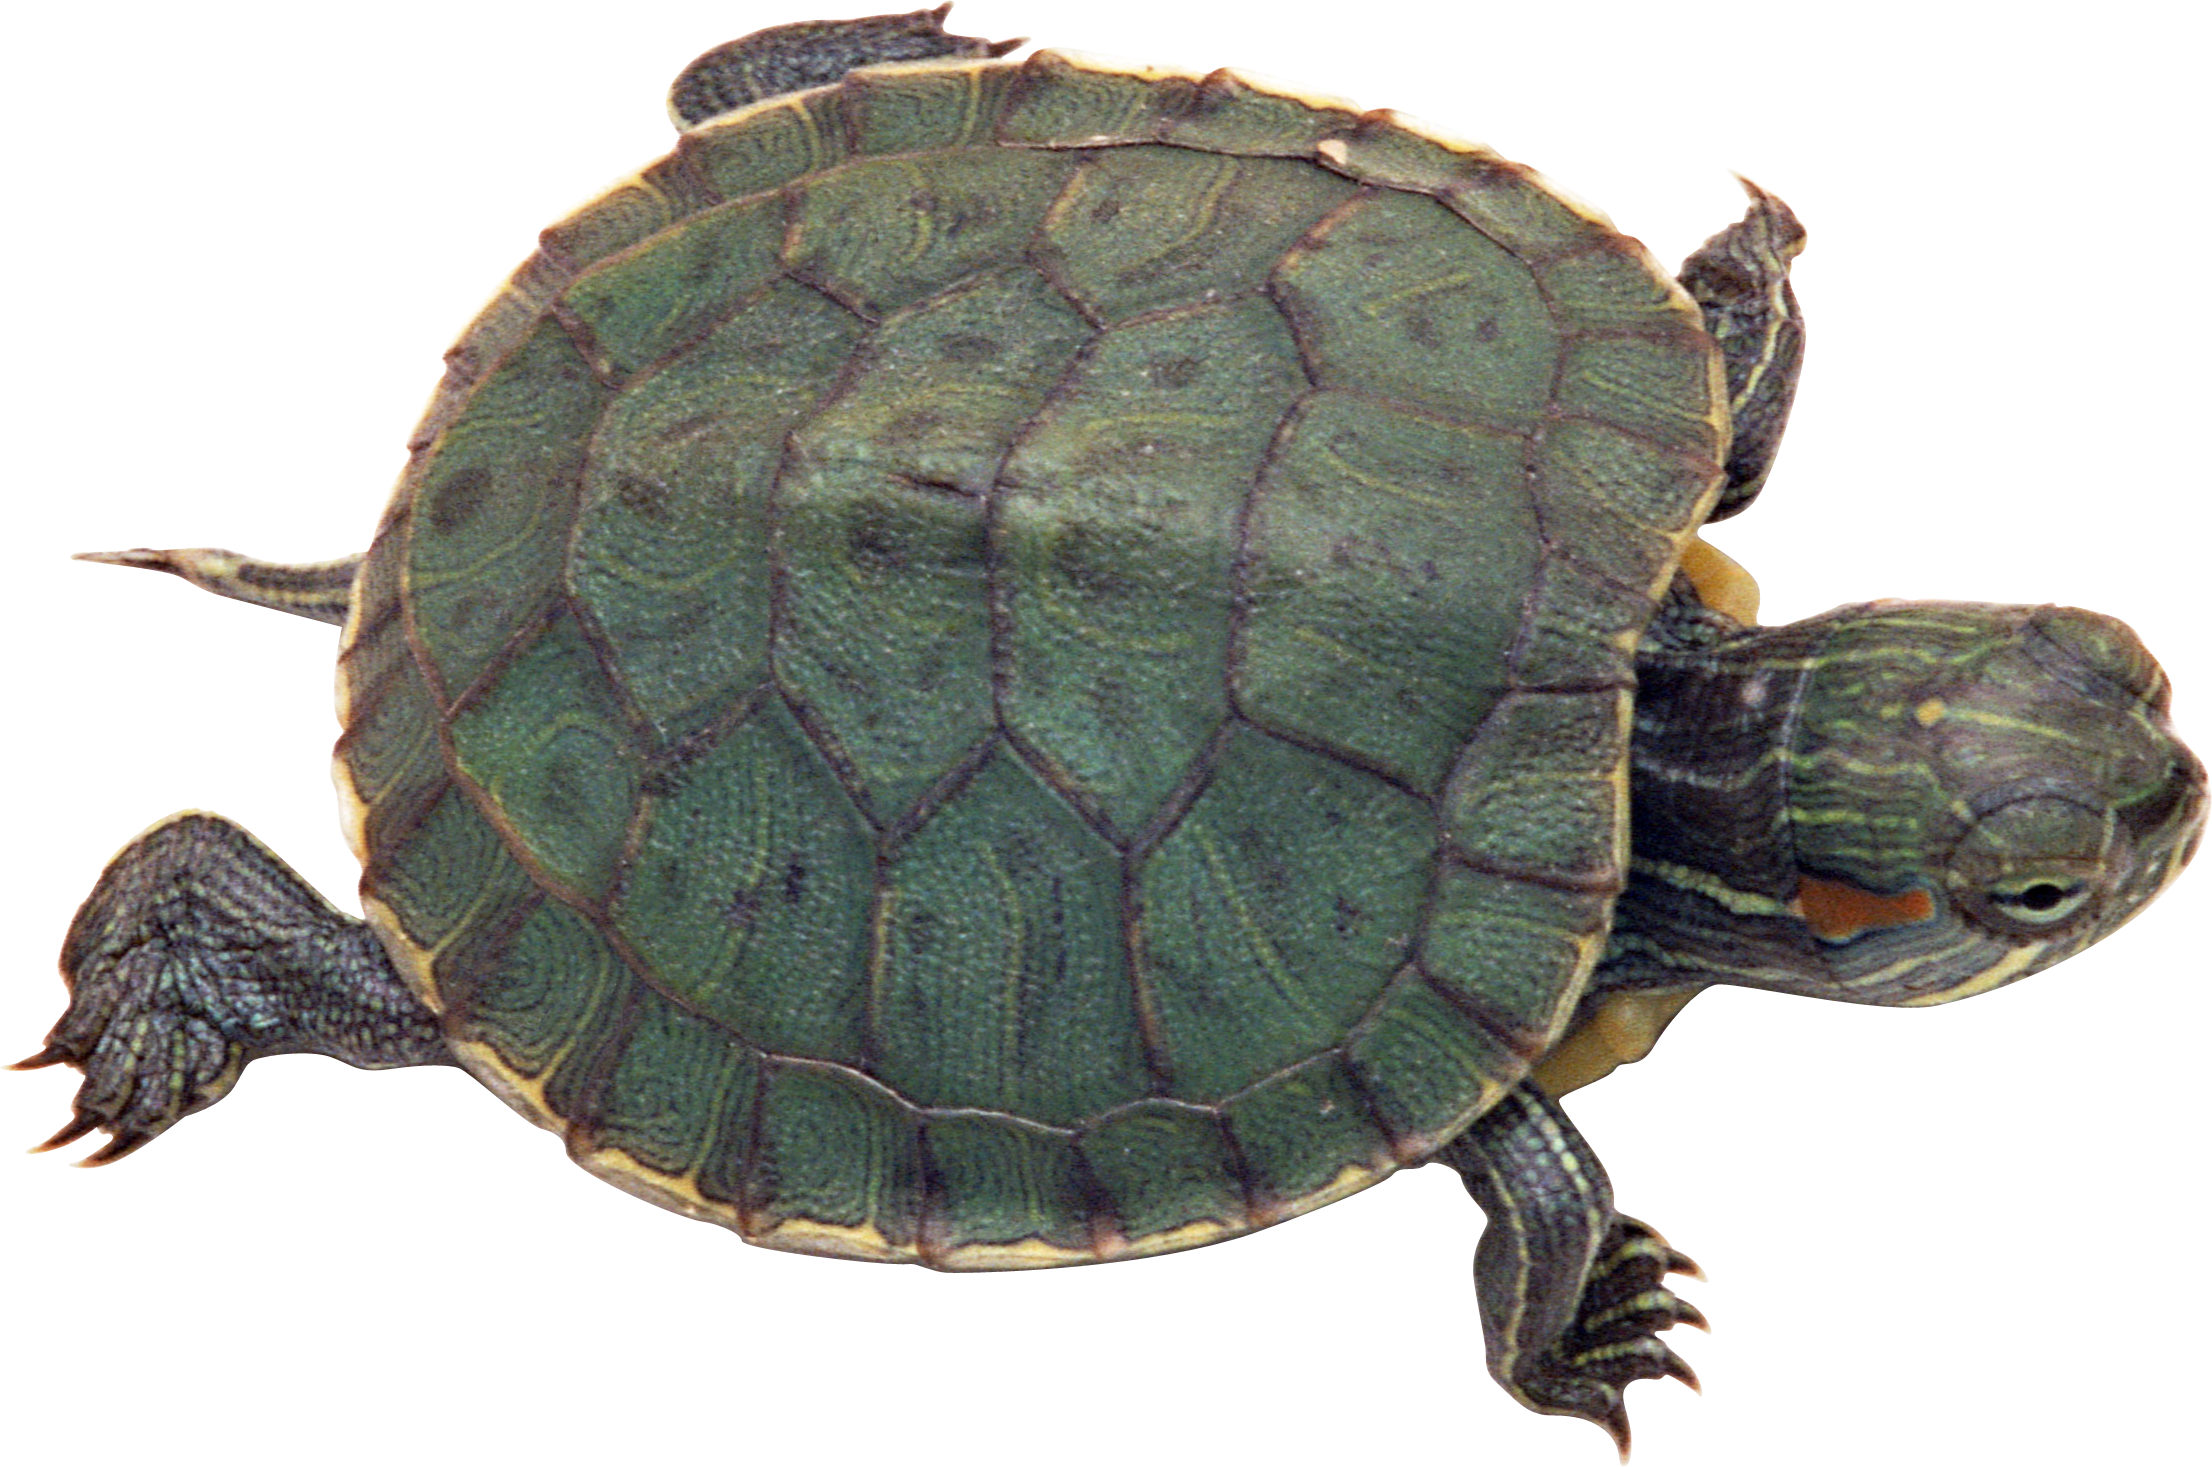 Turtle PNG - 24633